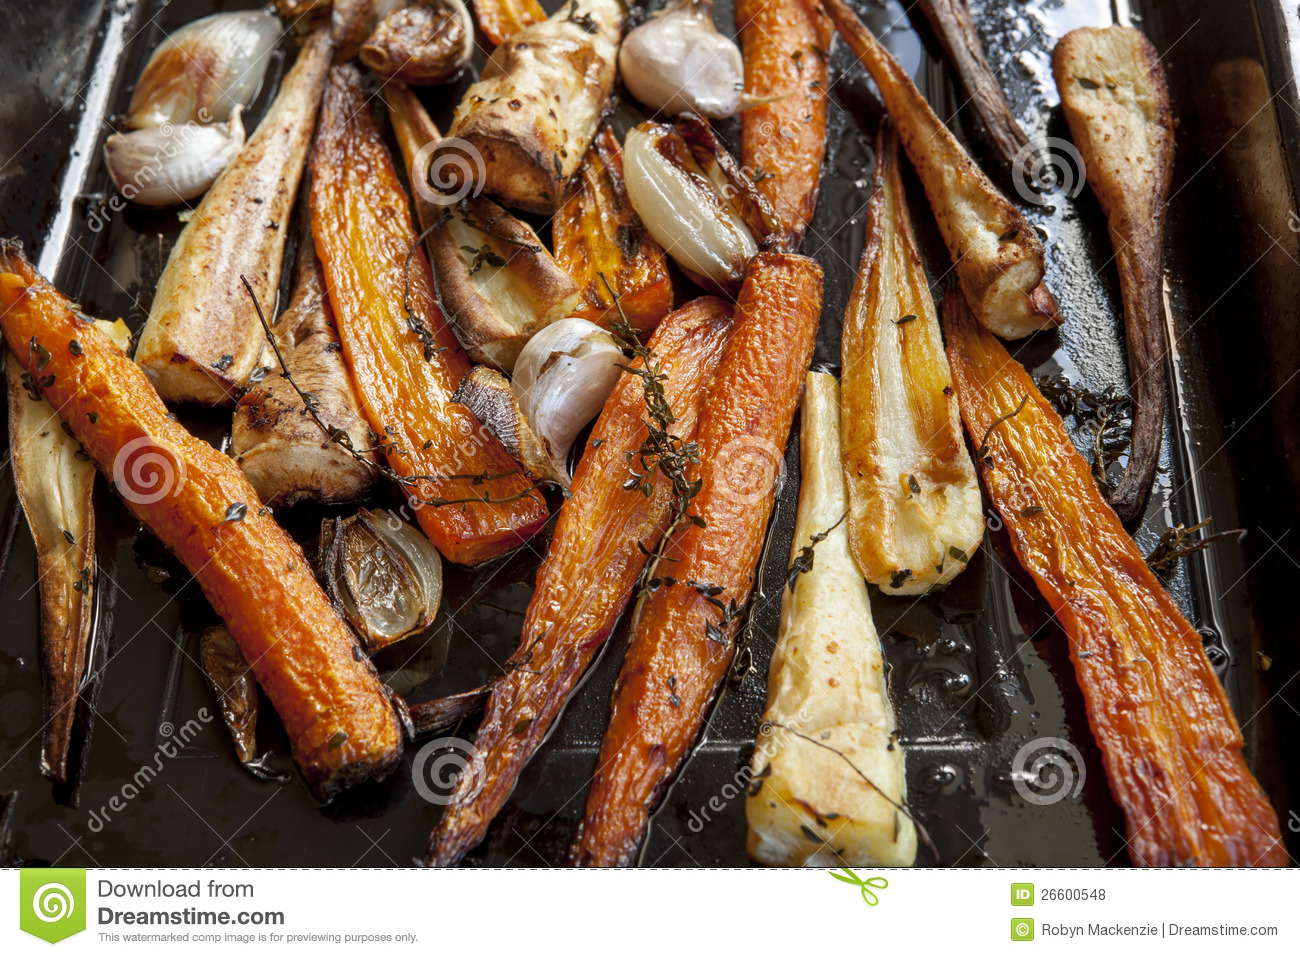 is just roasted parsnips and carrots roasted parsnips and carrots 2 ...